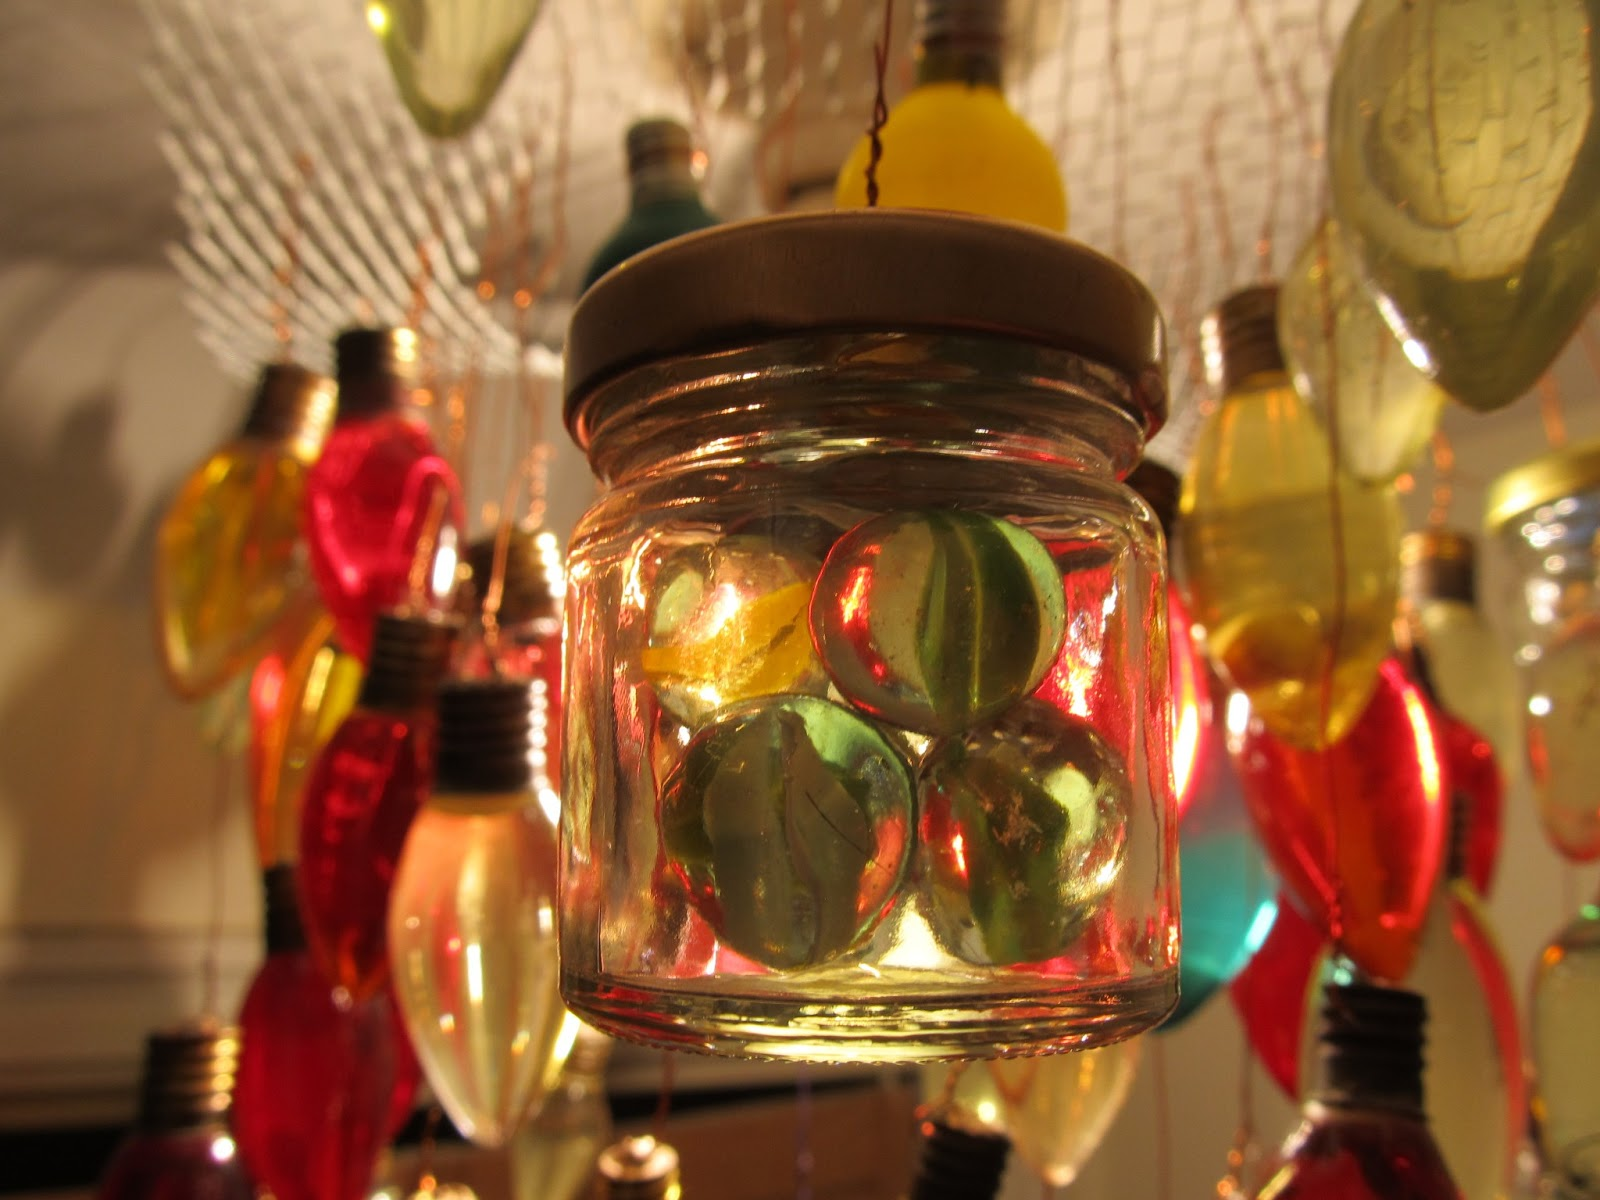 Coloured Marbles - very popular with certain fans of lightbulb art